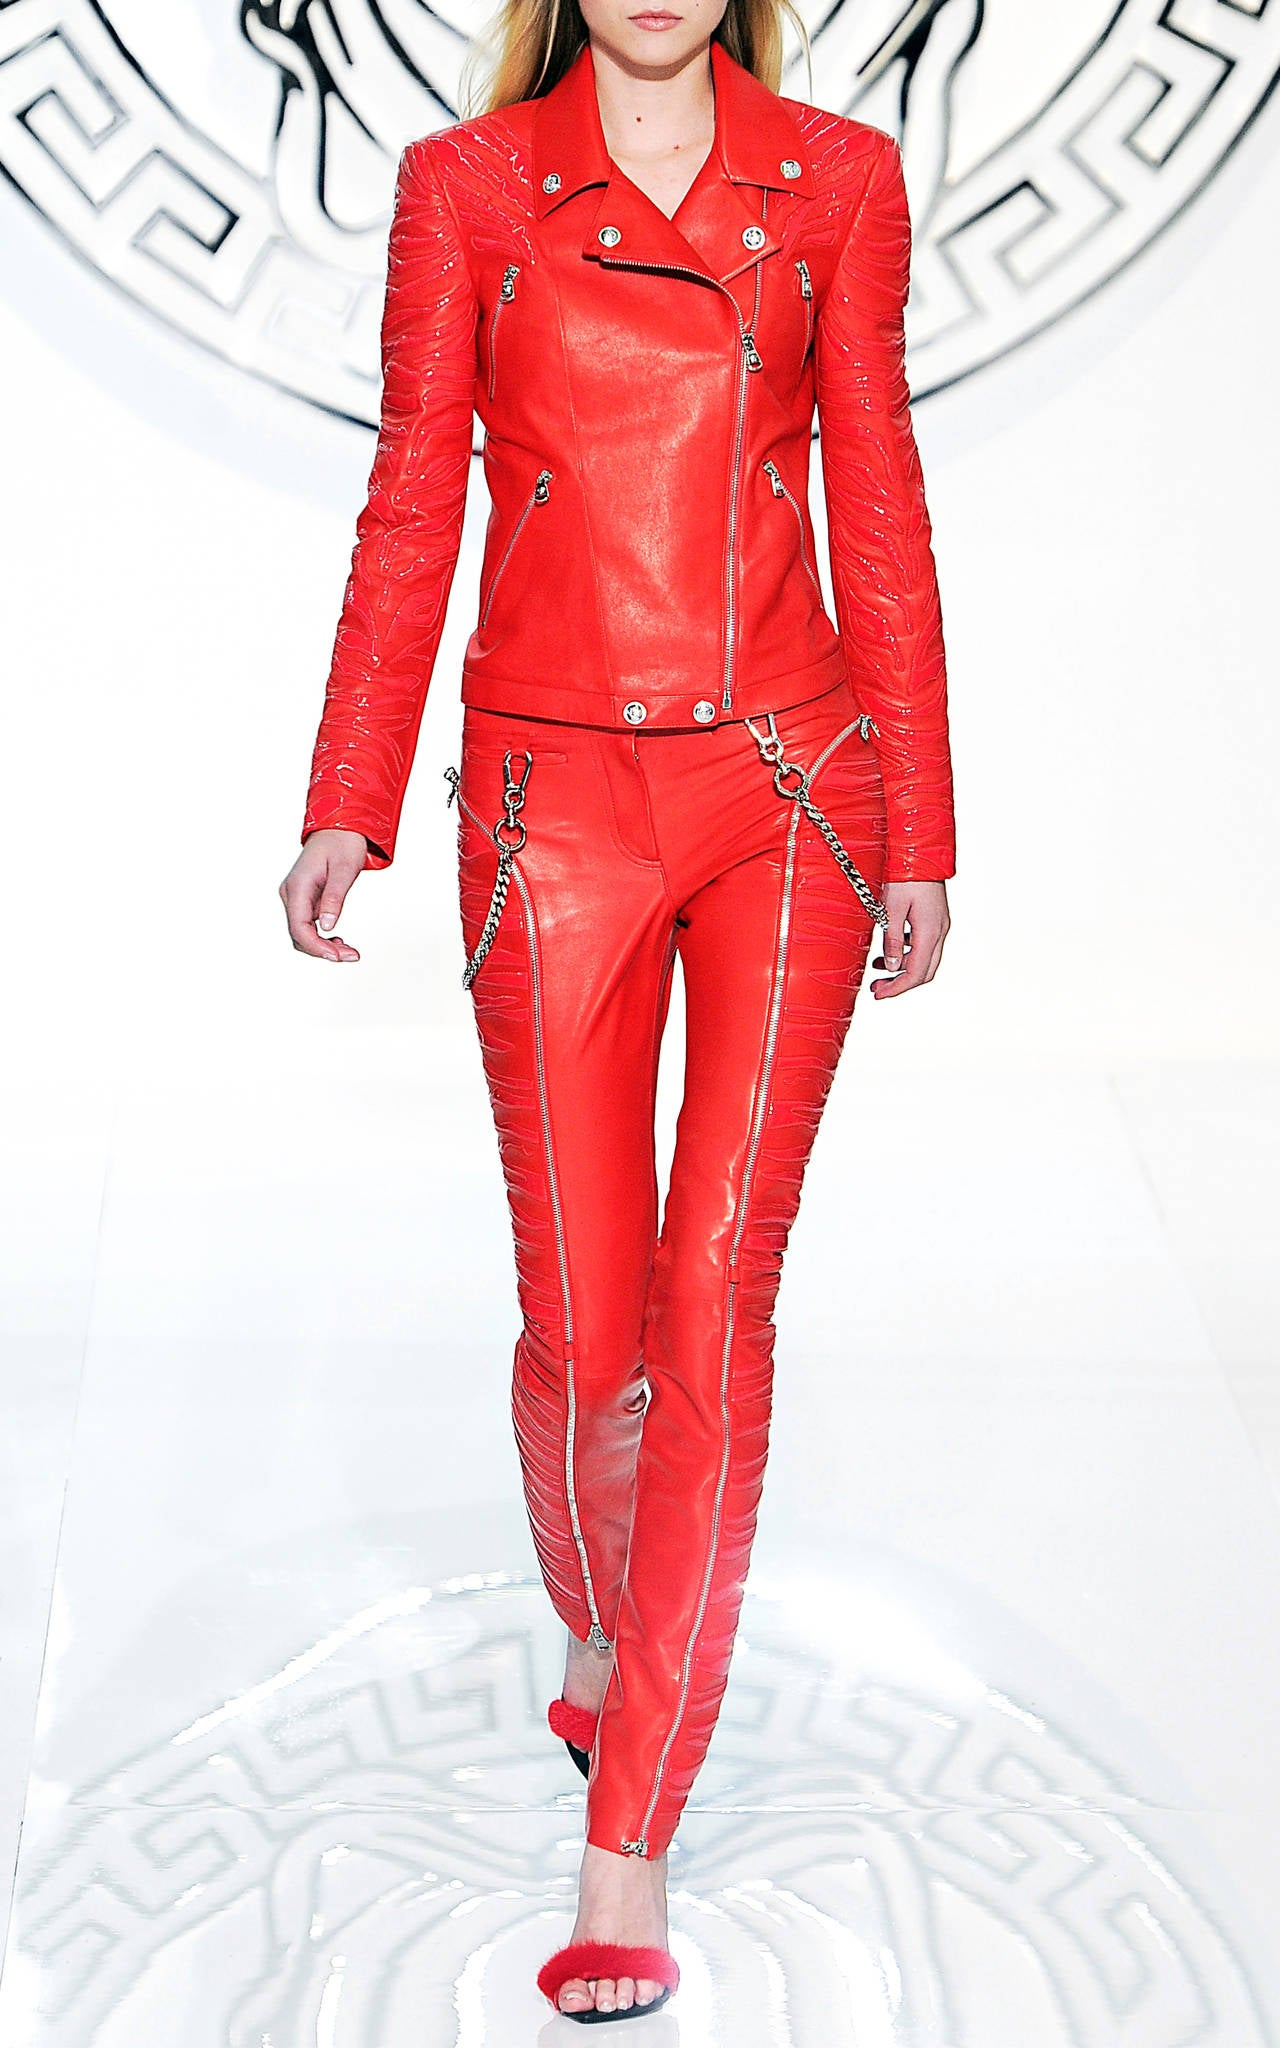 New VERSACE Red Leather Moto Jacket With Vinyl Animal Stripes 2